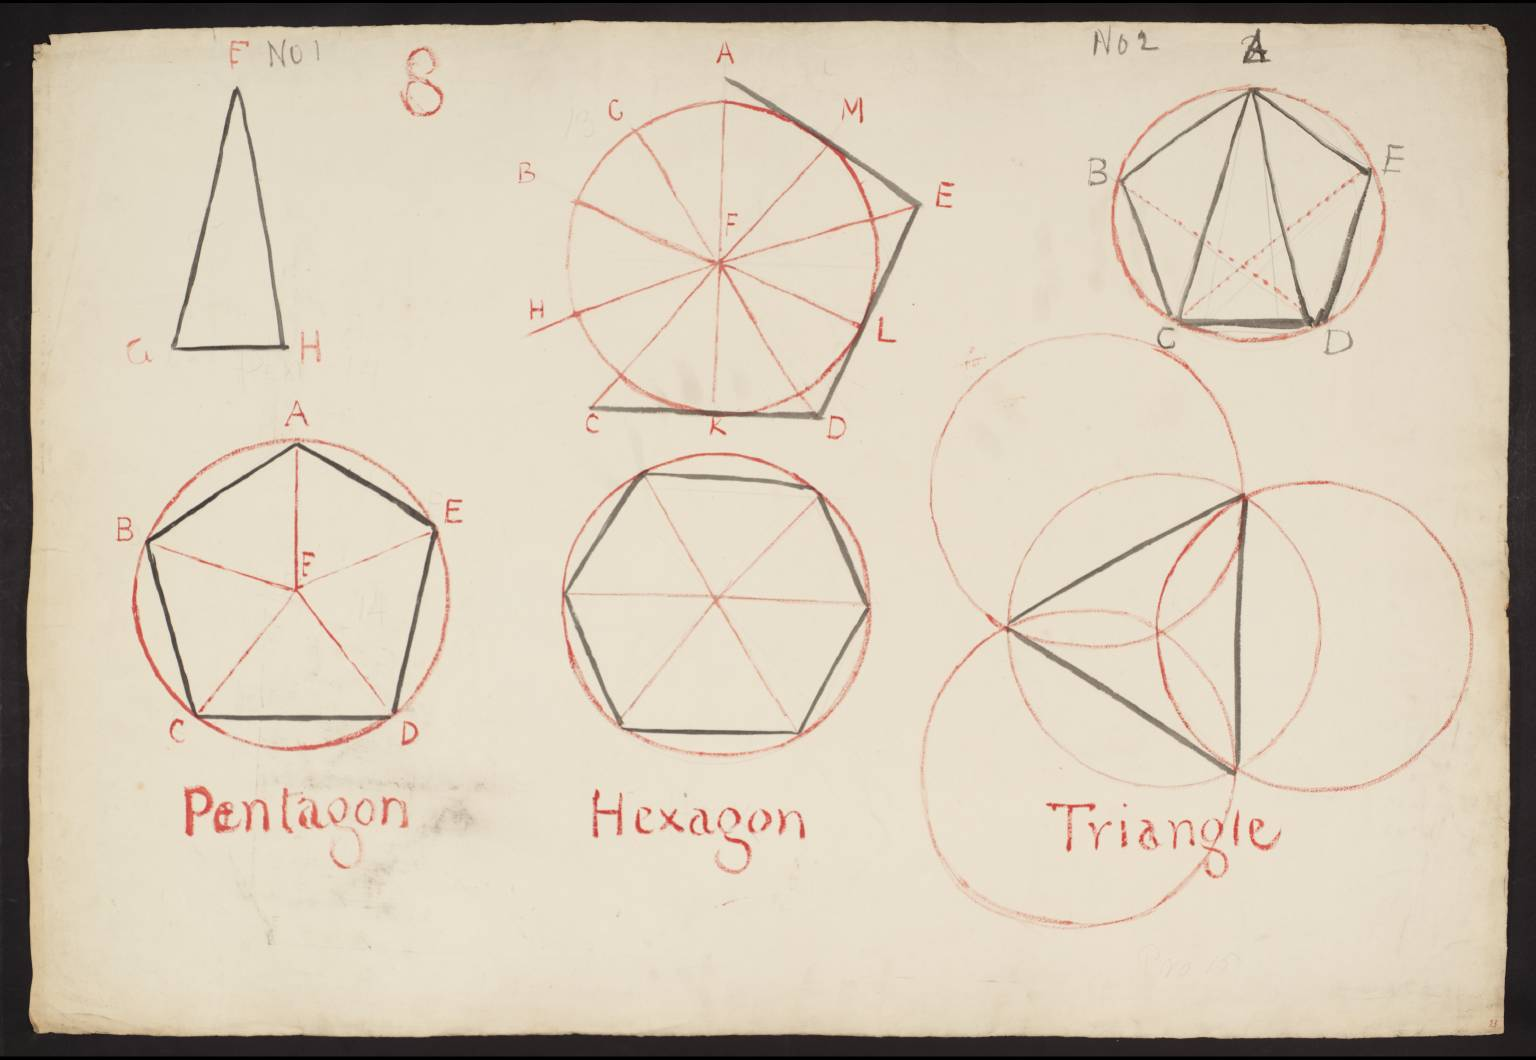 The Elements of analytical Geometry according to Euclid